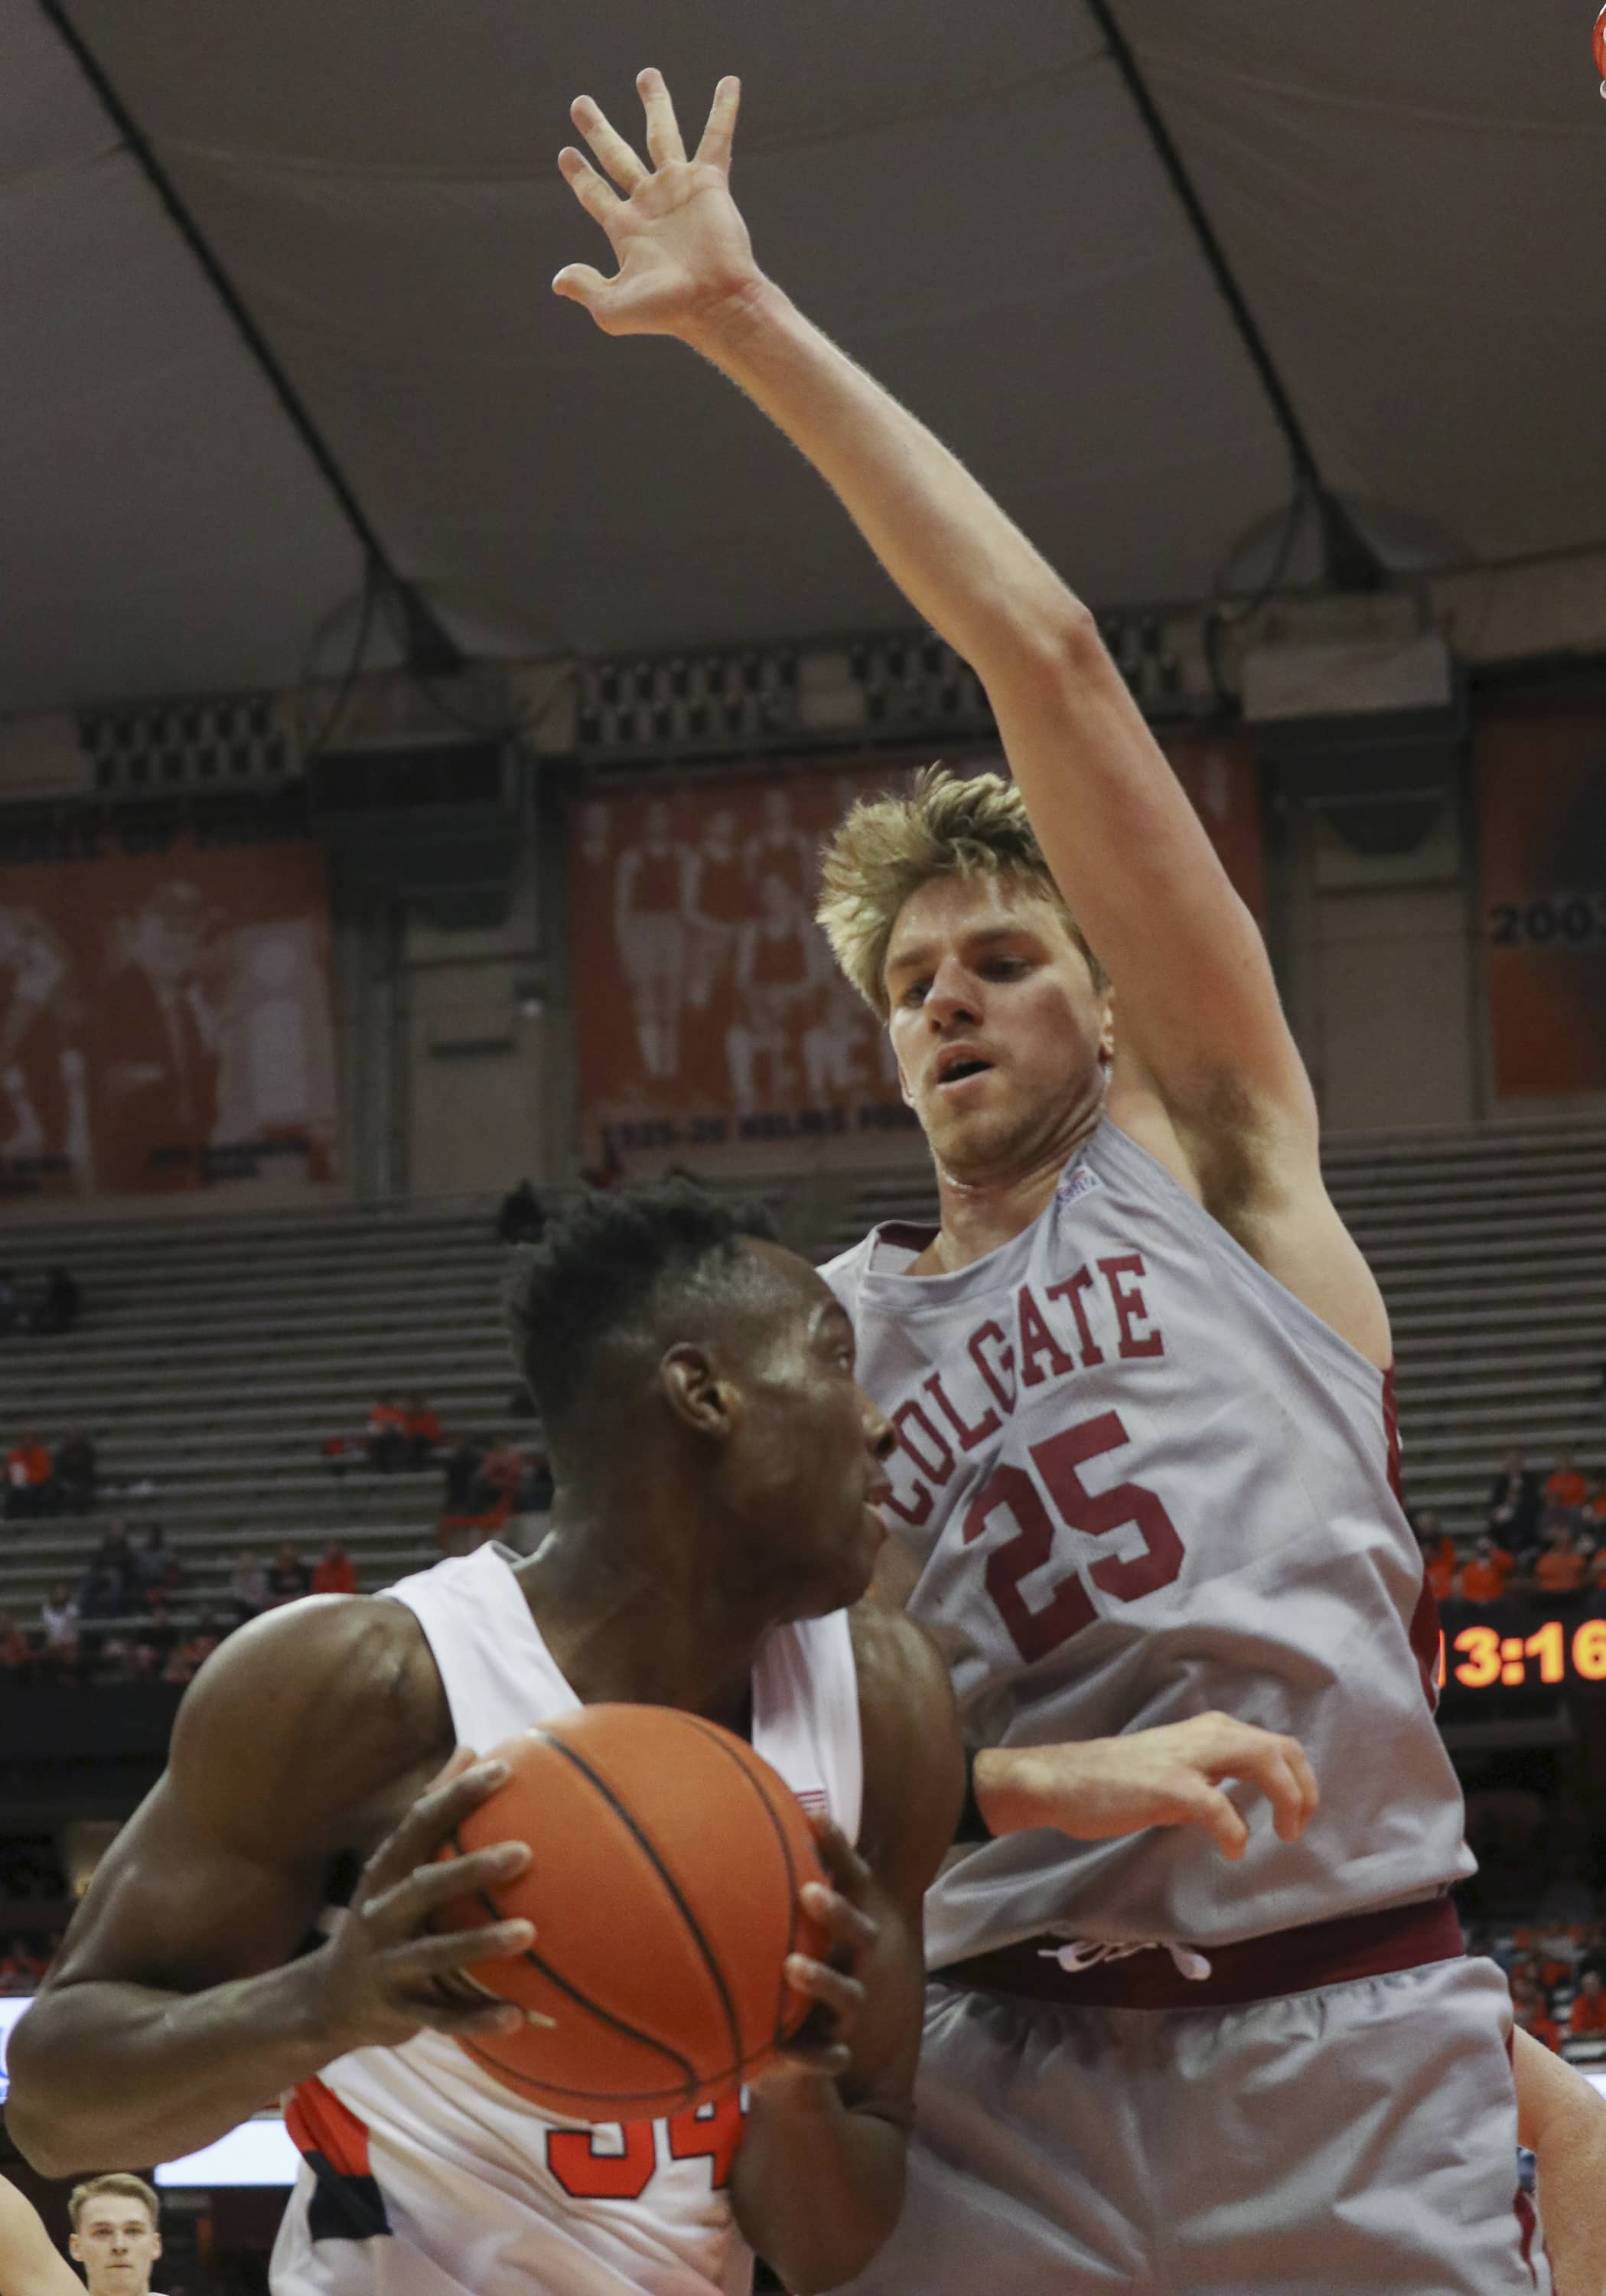 Colgate University's forward Rapolas Ivanauskas (25), attempts to block a shot from Syracuse University's forward Bourama Sidibe (34), in a college basketball game on Nov. 13, 2019. Syracuse beat Colgate with a score of 70 to 54.